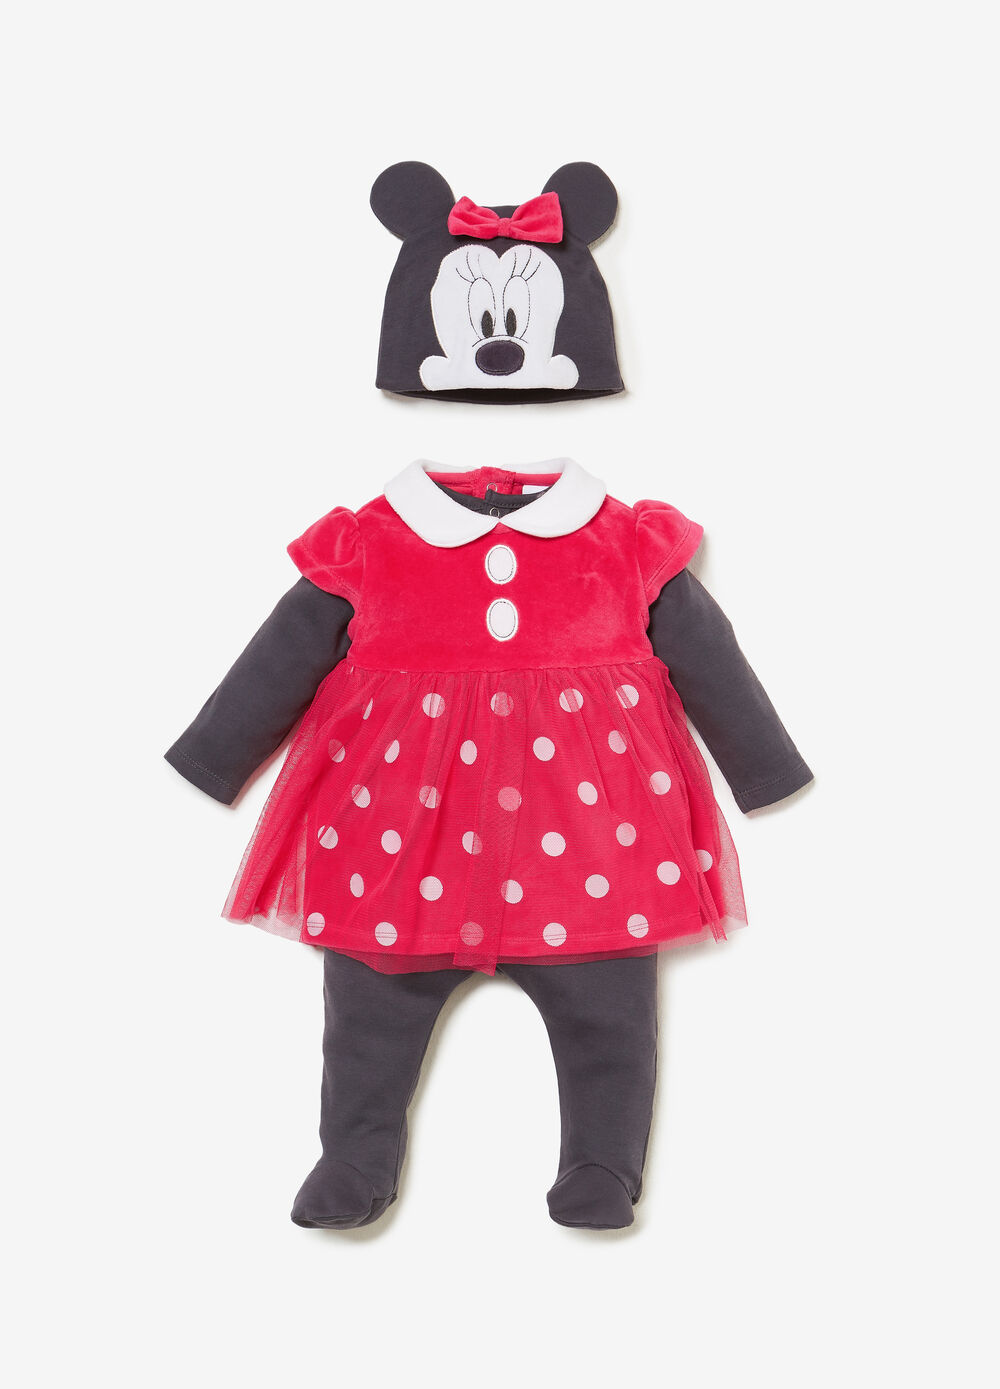 Minnie Mouse onesie, dress and hat outfit